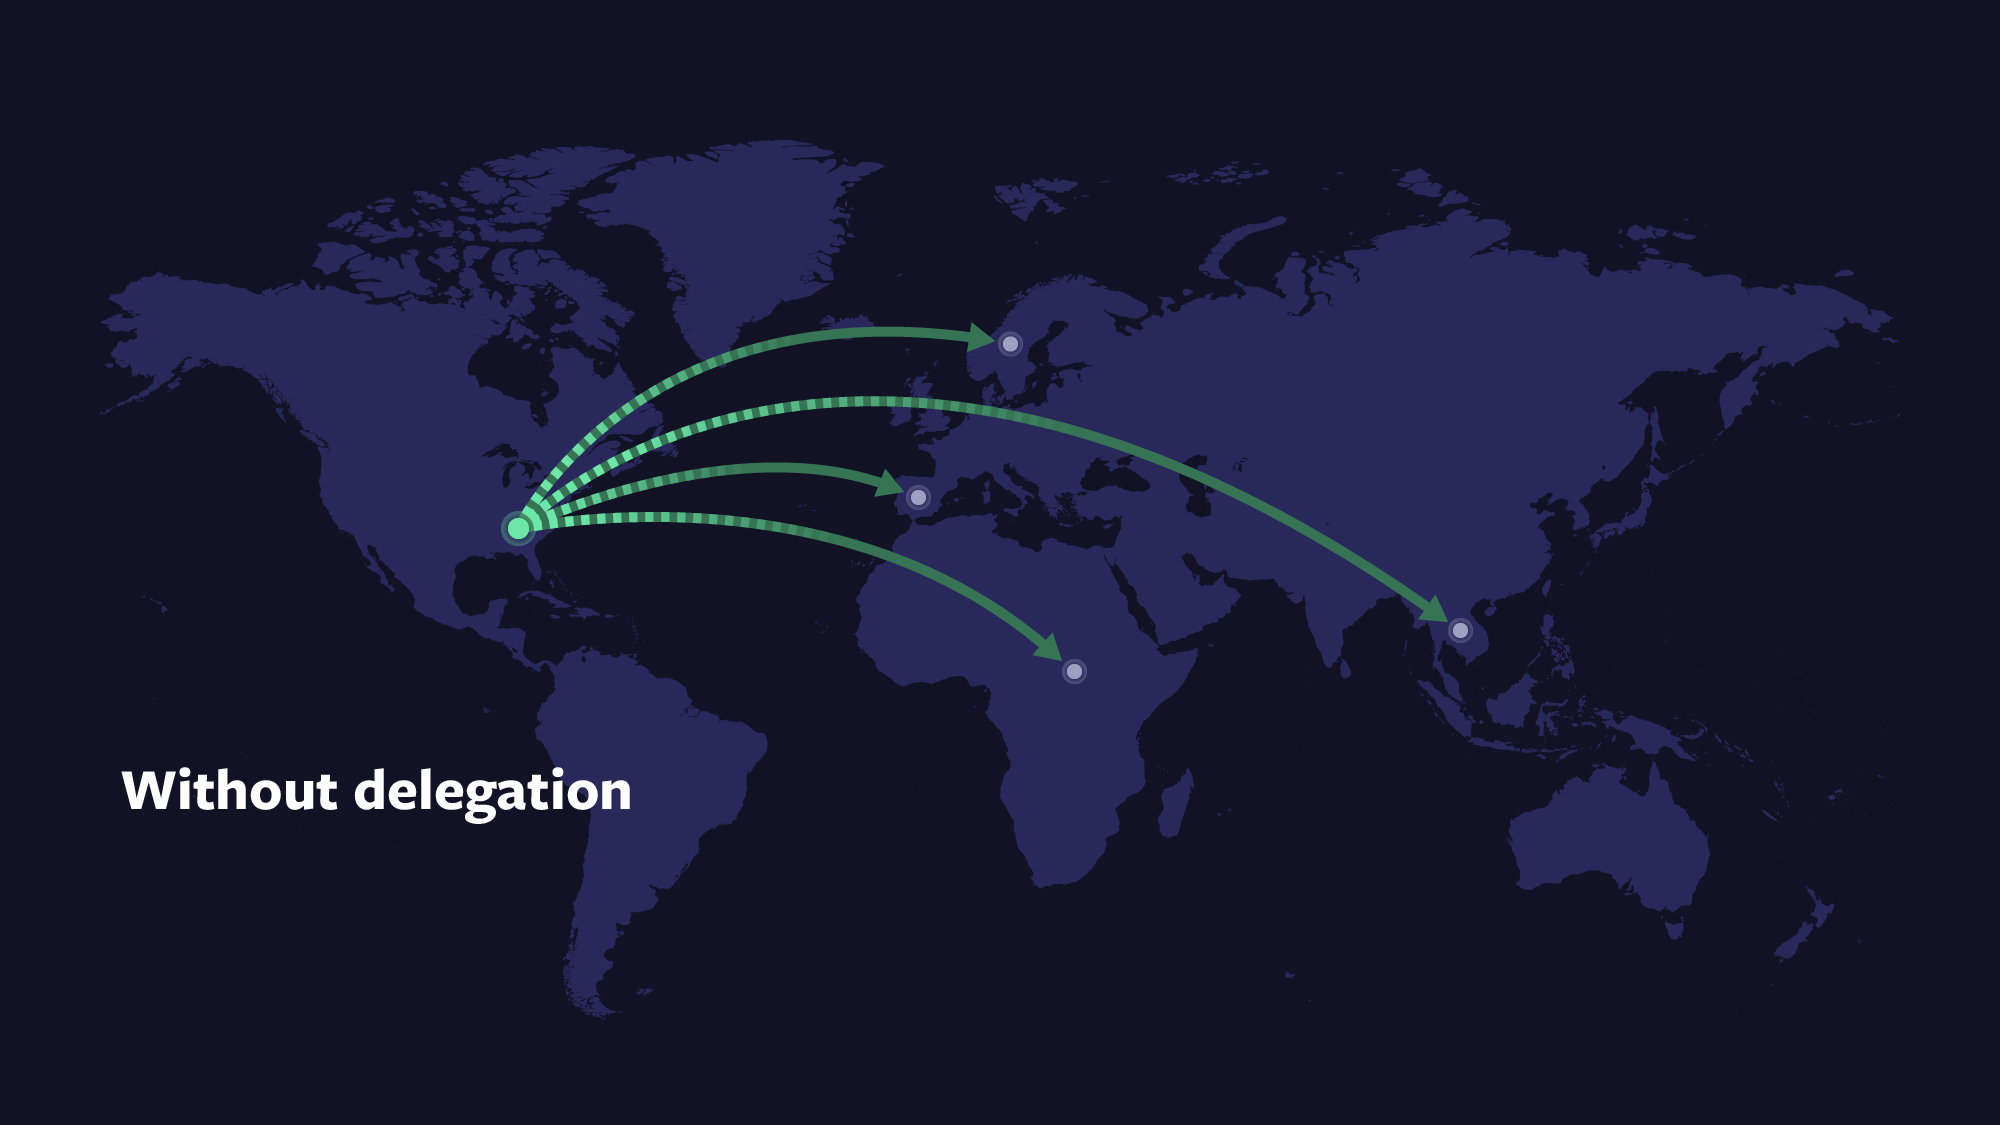 Using delegation through VCache nodes, developers can not only optimize where something is stored but can also configure the route taken to get there.